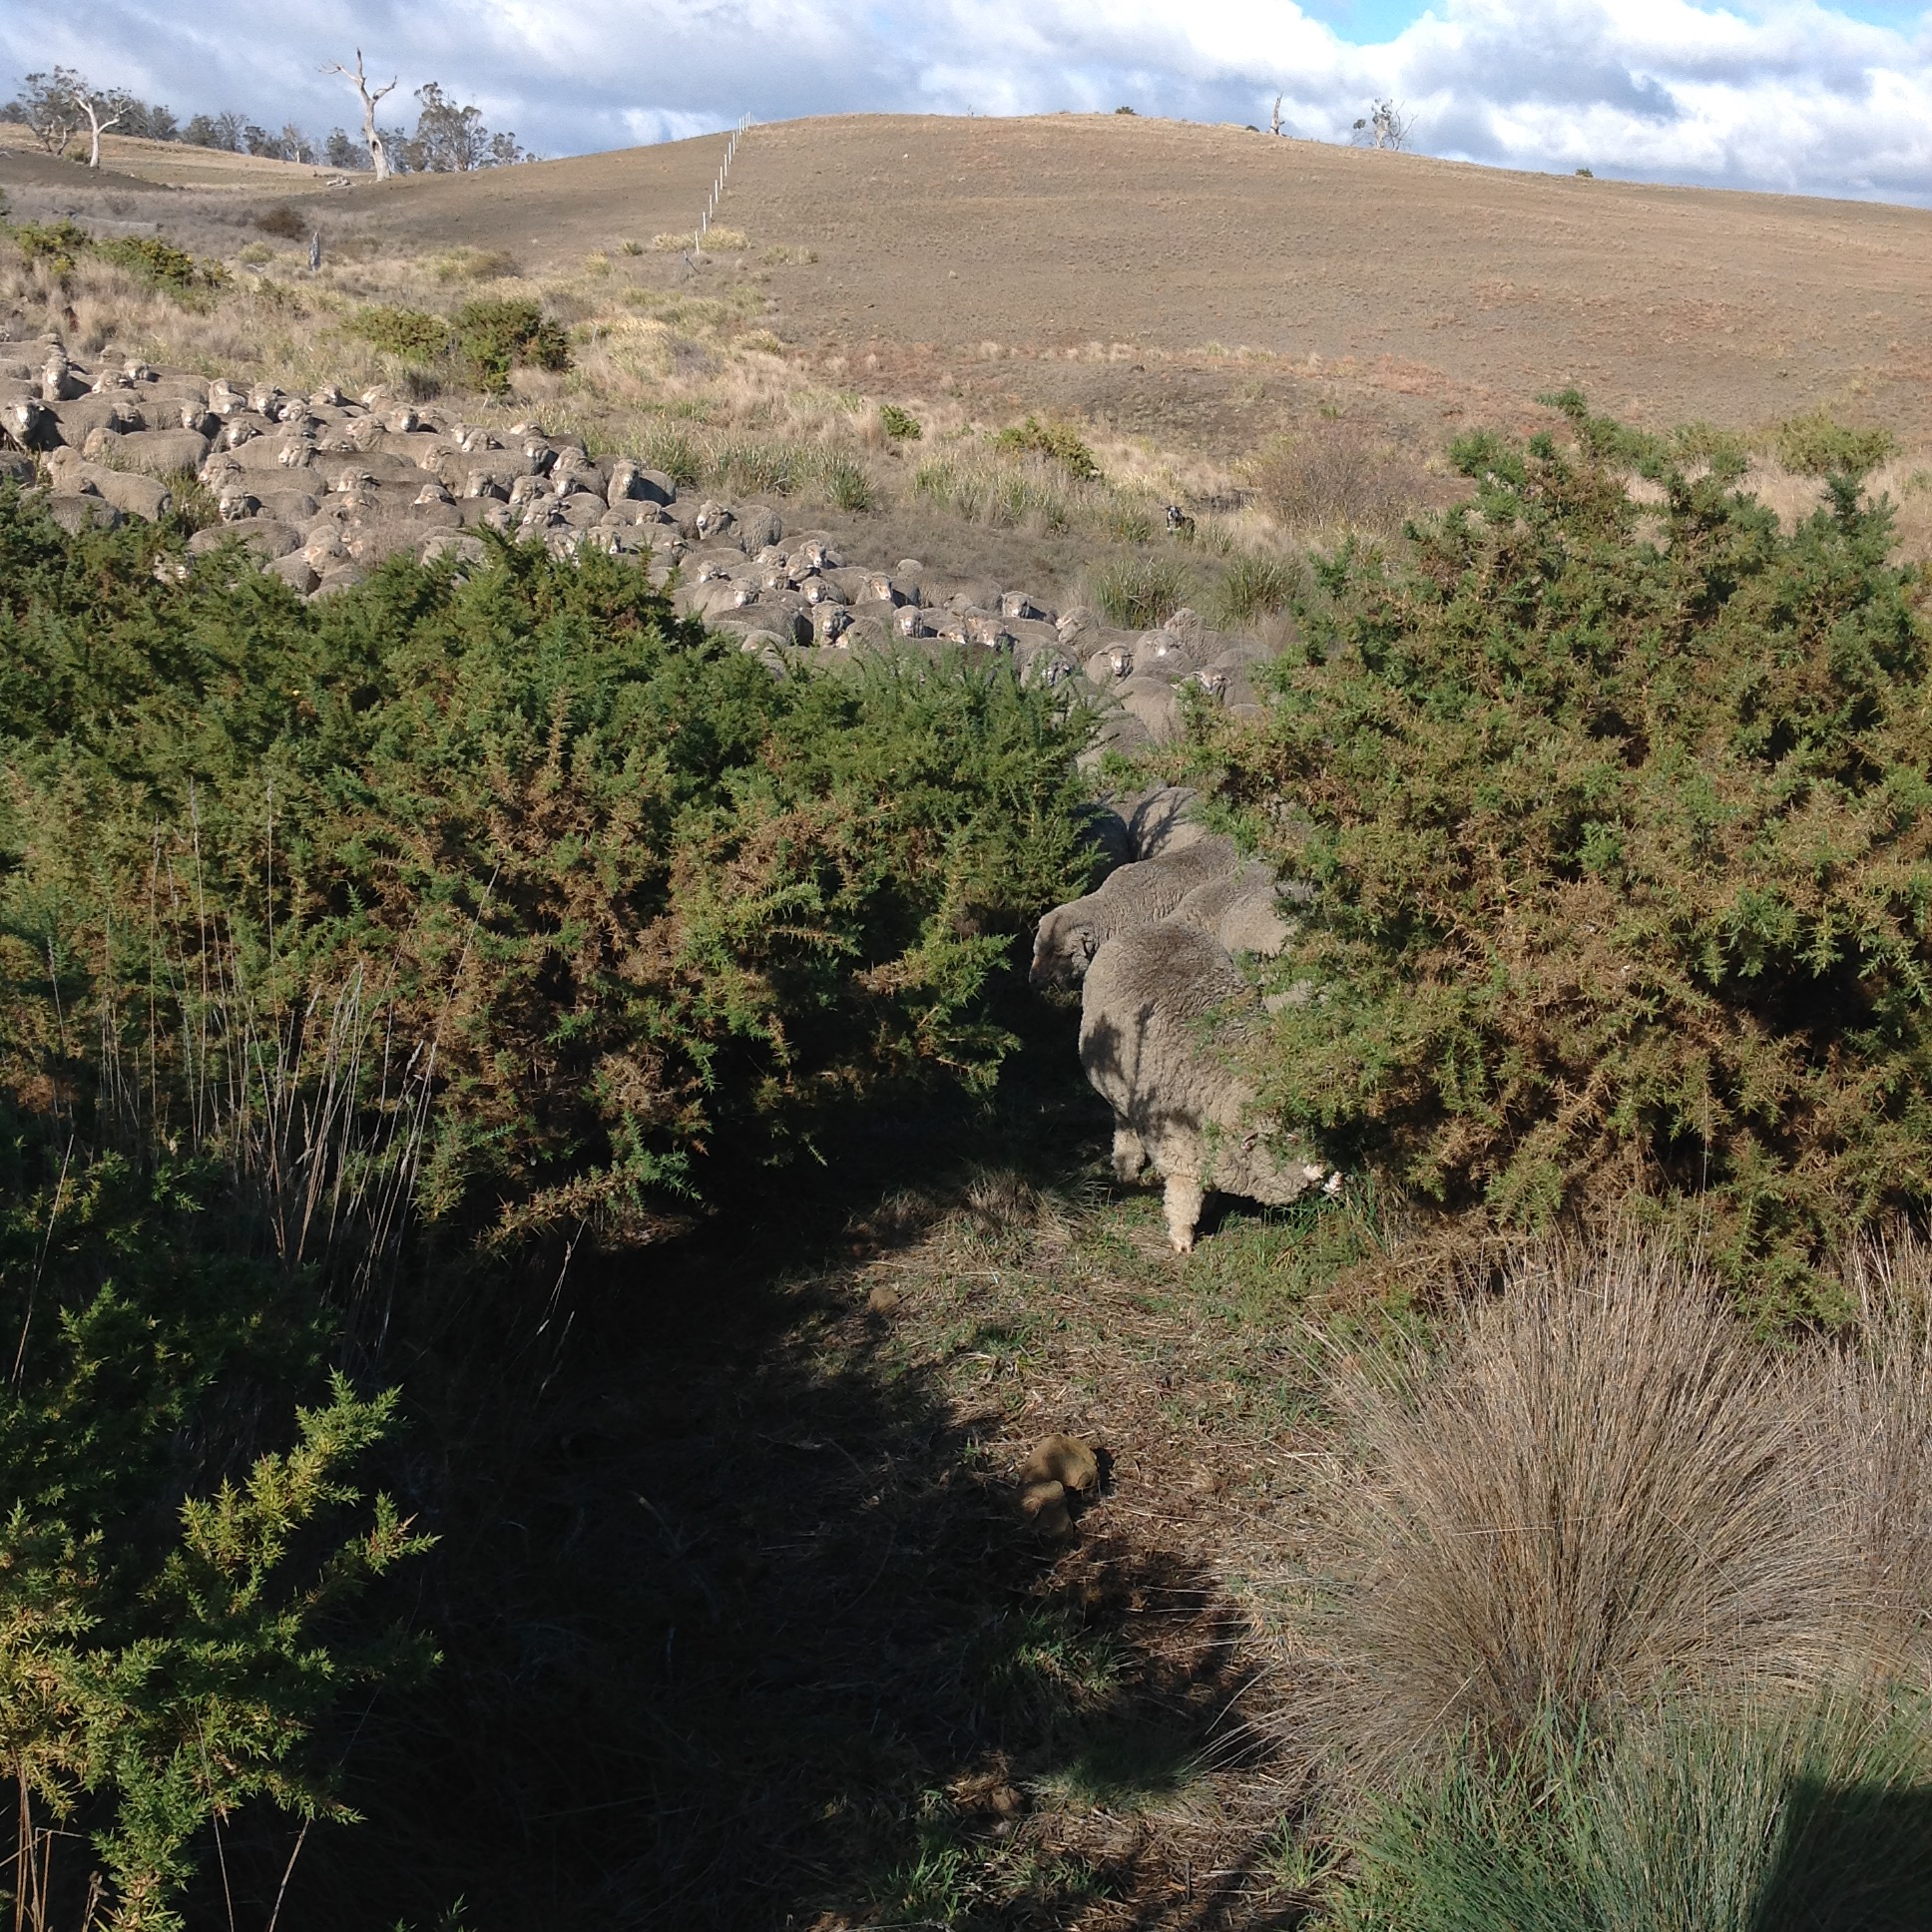 P6: The one very narrow track through the gorse at the bottom of the gully. They followed me through!